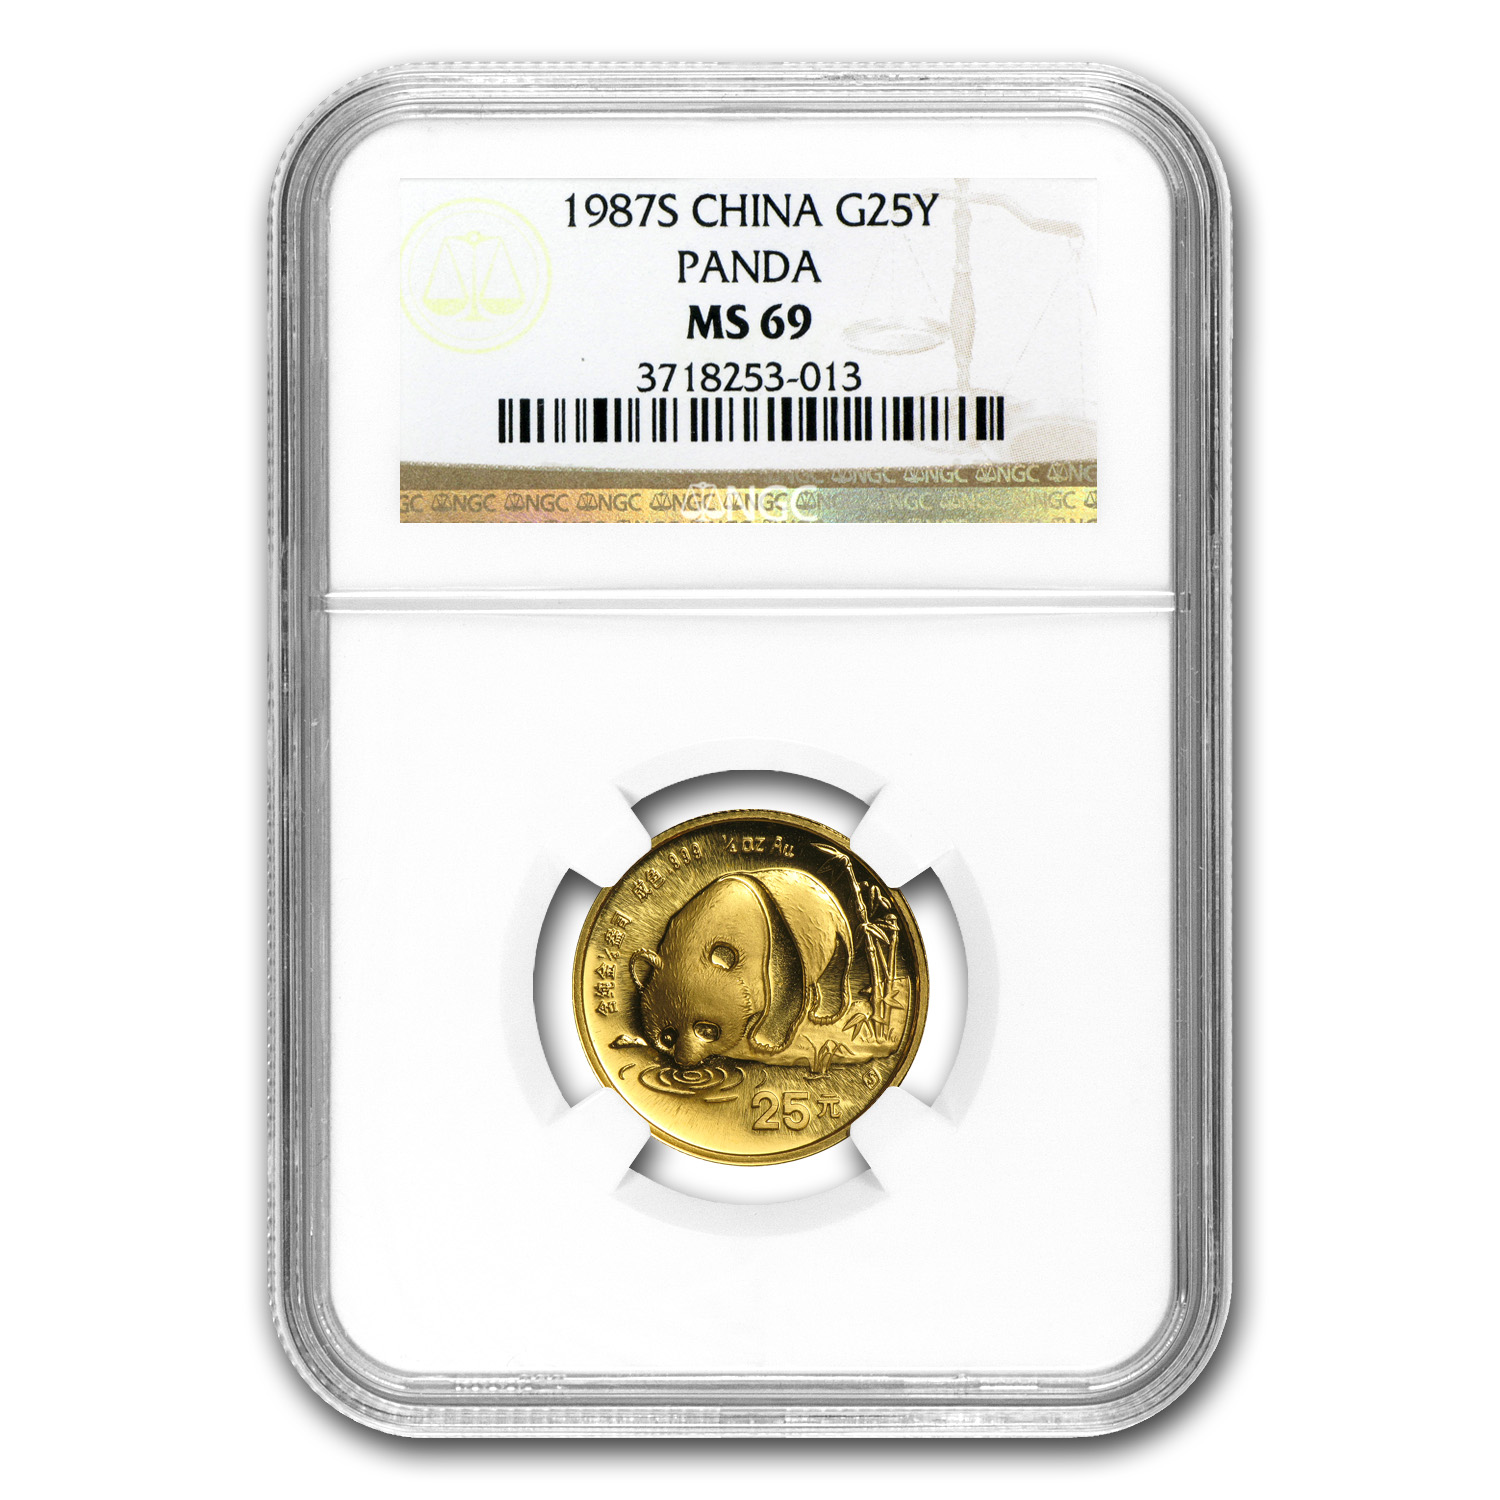 1987-S China 1/4 oz Gold Panda MS-69 NGC